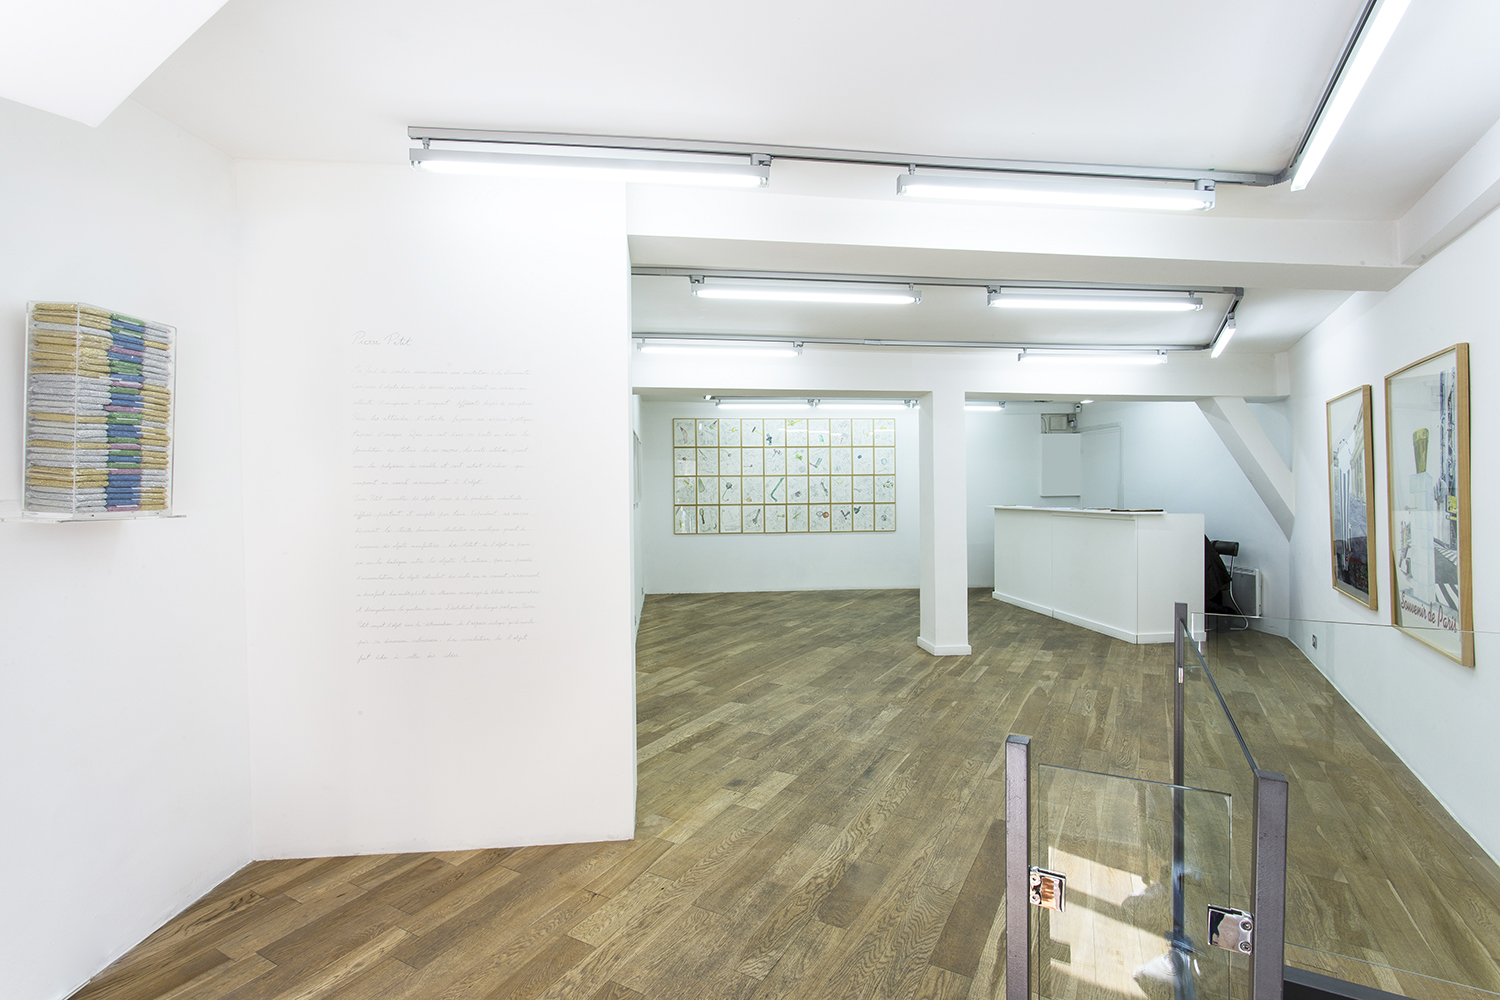 Au fond du couloir, Pierre Petit, exhibition view, September 2015